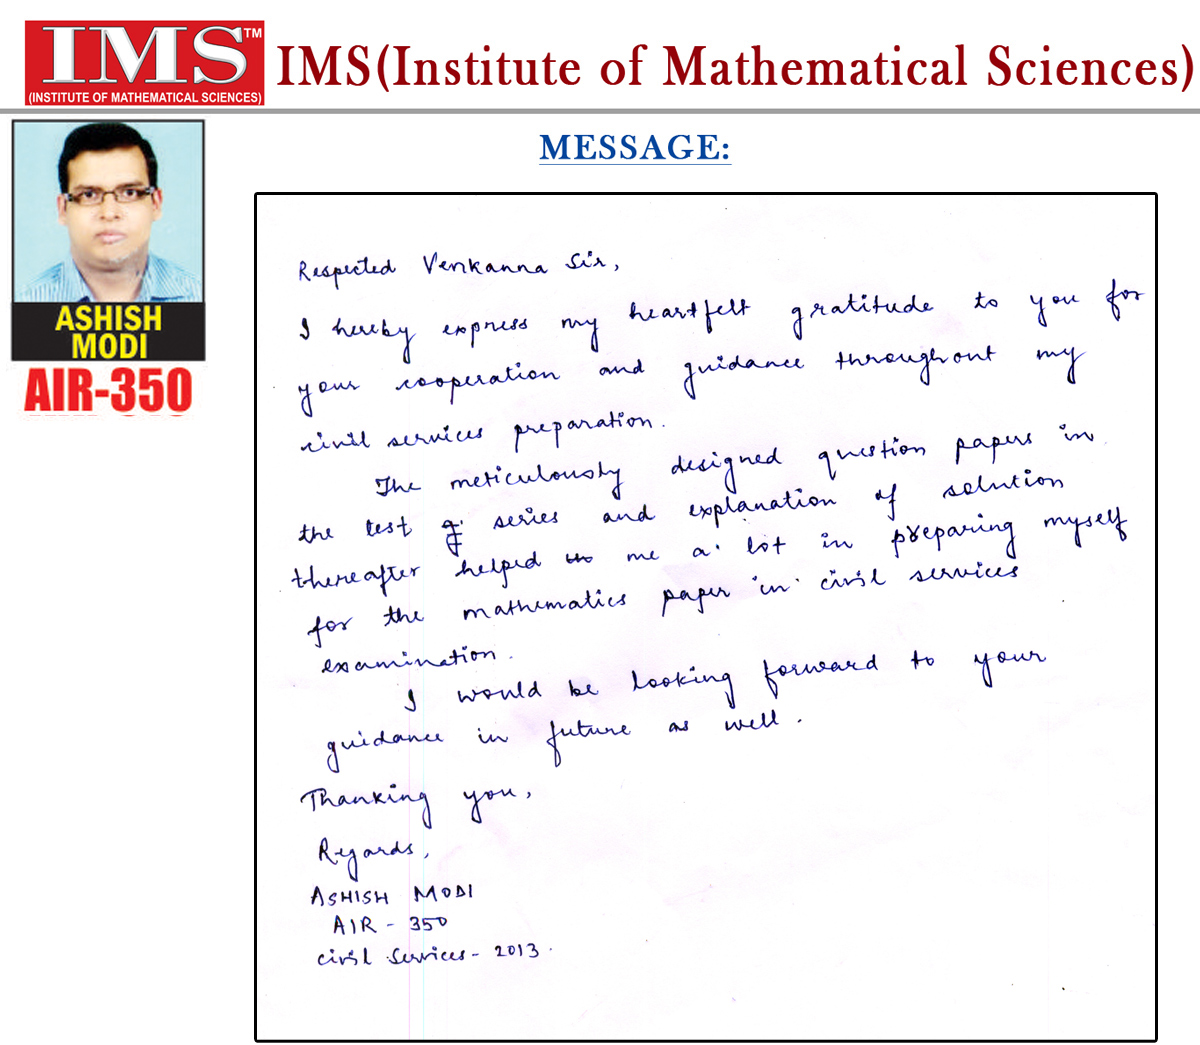 IAS-2013-Ashish Modi-AIR 350 Message